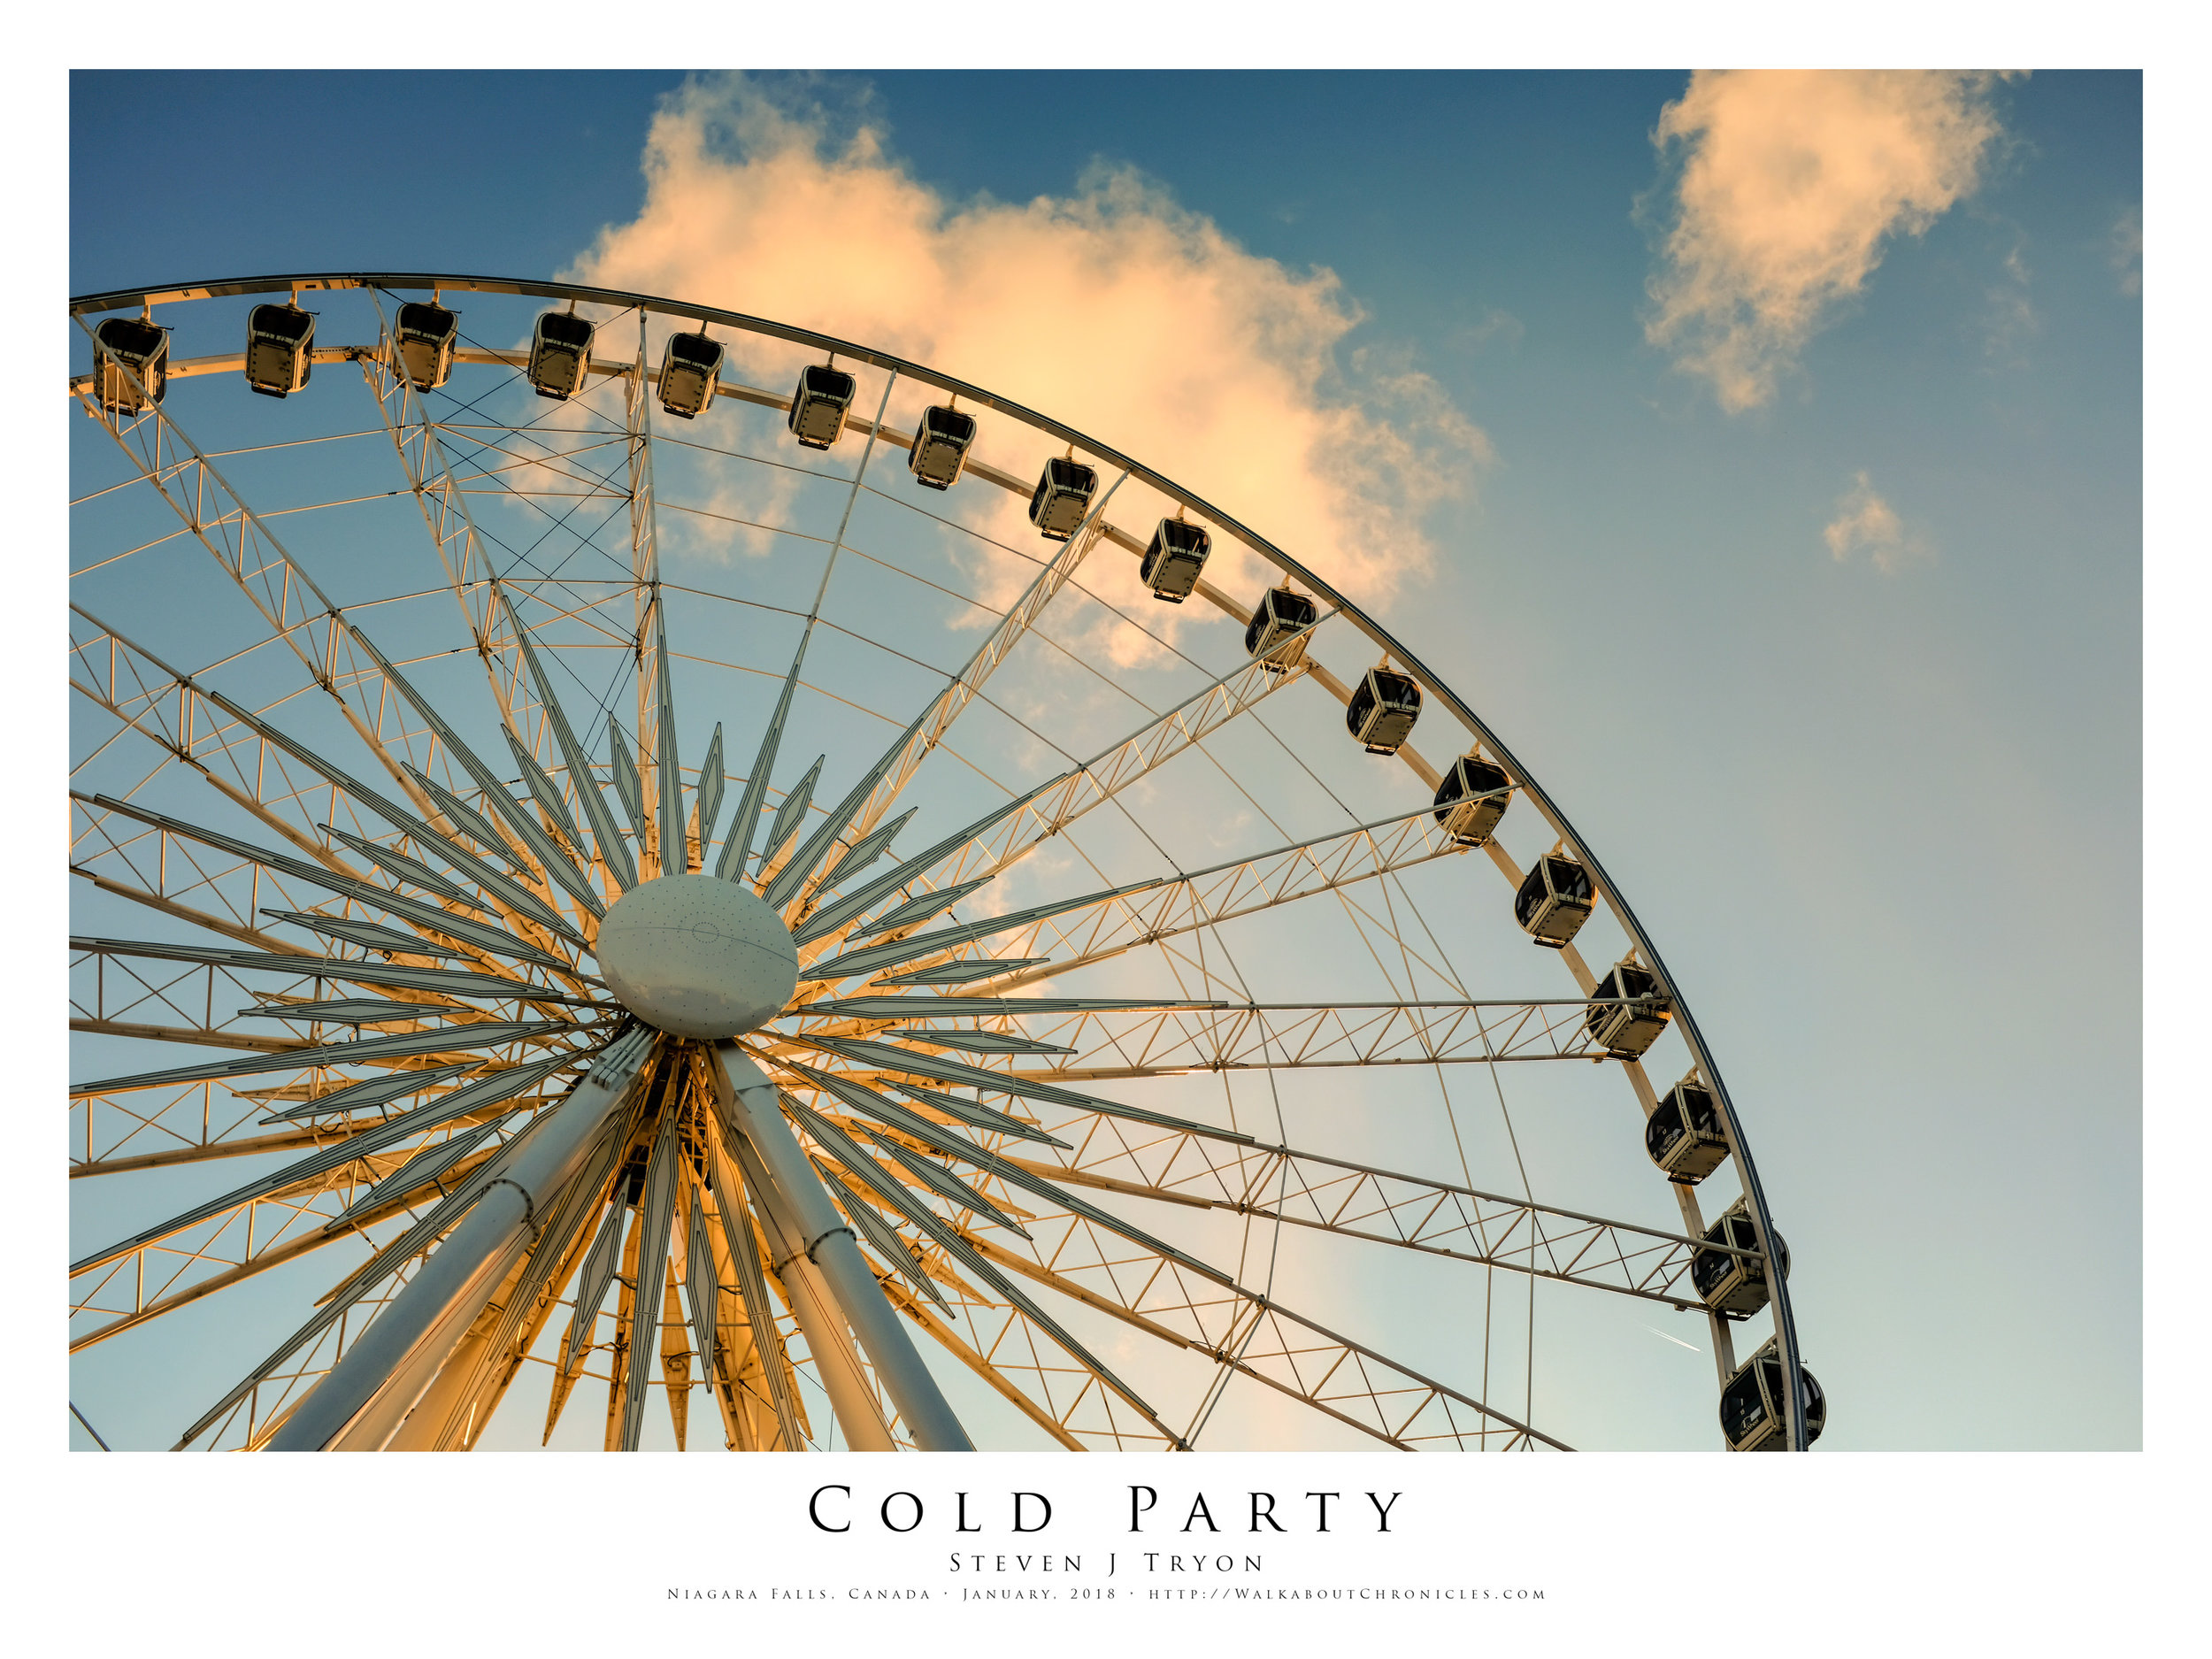 Cold Party